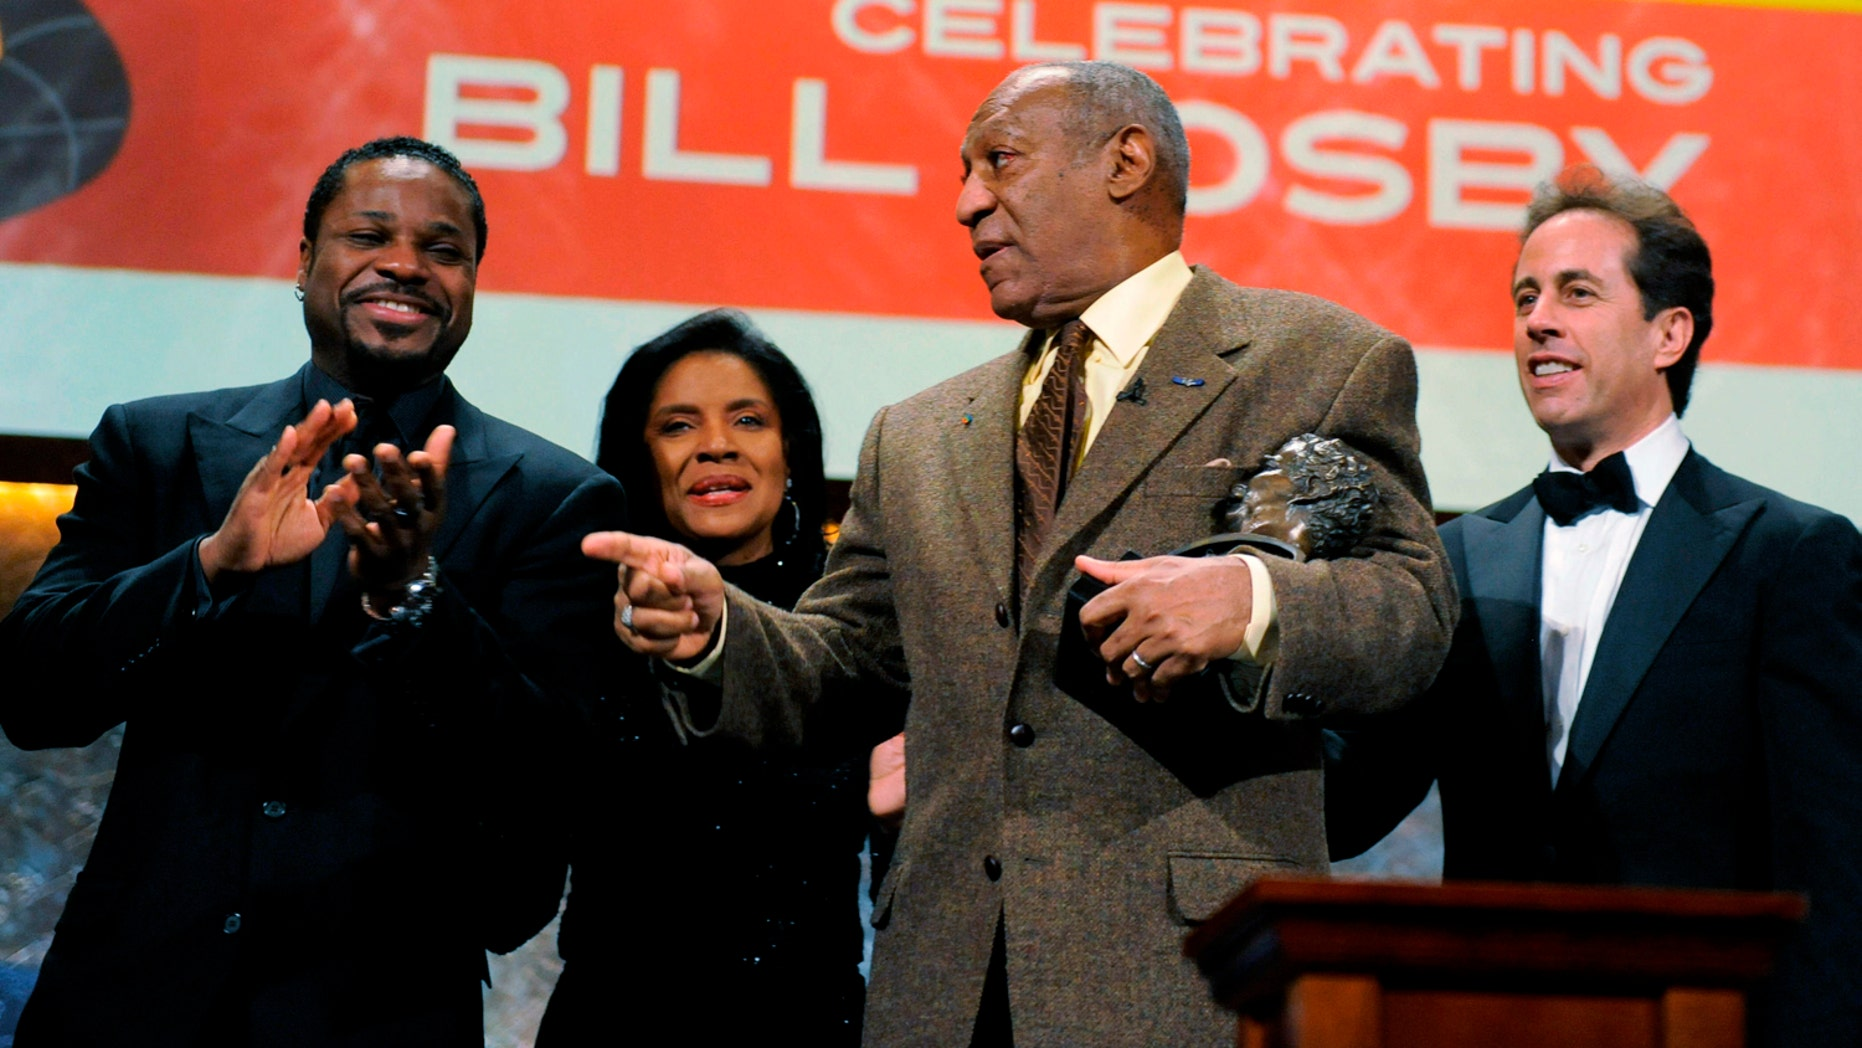 Comedian, actor, author and musician Bill Cosby (2nd R) cradles his Mark Twain award in his arm as he jokes with cast members (from L to R) actor Malcolm-Jamal Warner, actress Phylicia Rashad and comedian Jerry Seinfeld at the conclusion of the Kennedy Center For the Performing Arts' fete for Cosby, where he was honored with their annual Mark Twain Prize for American Humor, in Washington, October 26, 2009.  REUTERS/Mike Theiler (UNITED STATES ENTERTAINMENT)